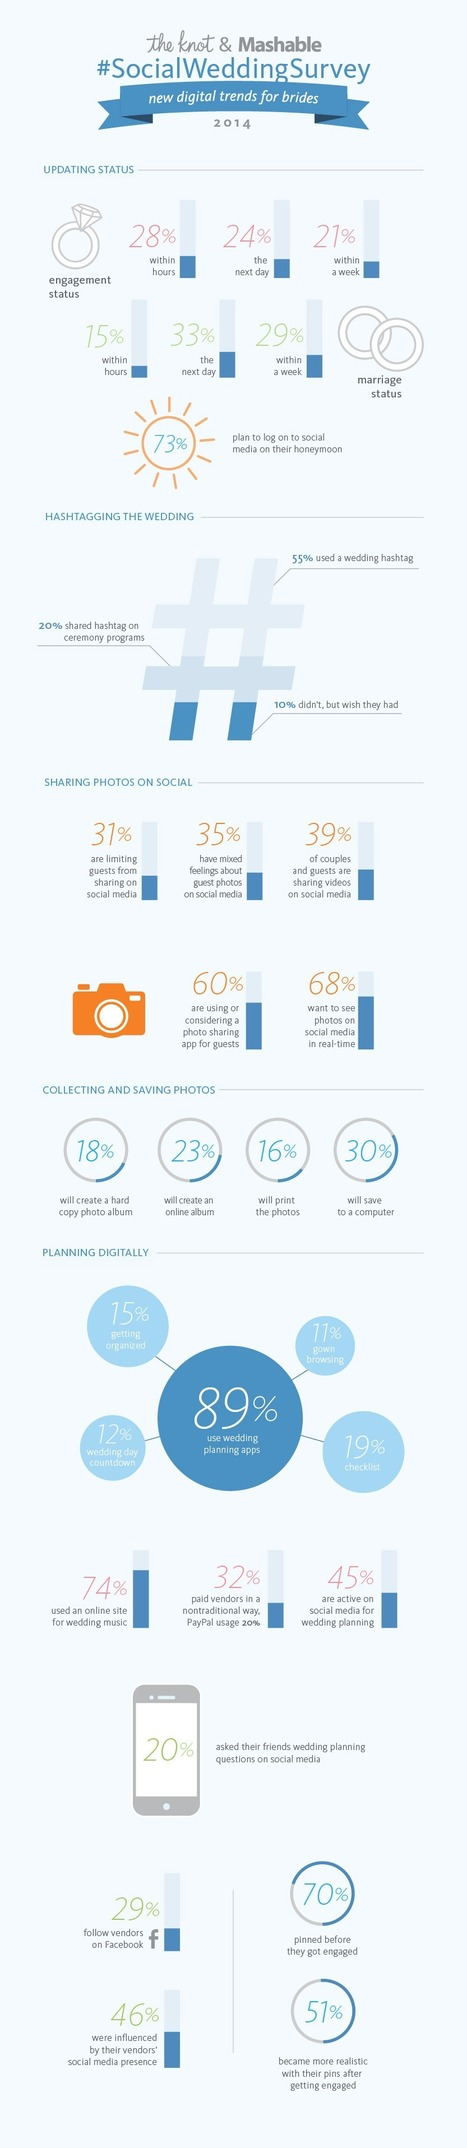 Weddings Are Becoming a Social Media Affair [Infographic] - SocialTimes | Weddings & Events | Scoop.it